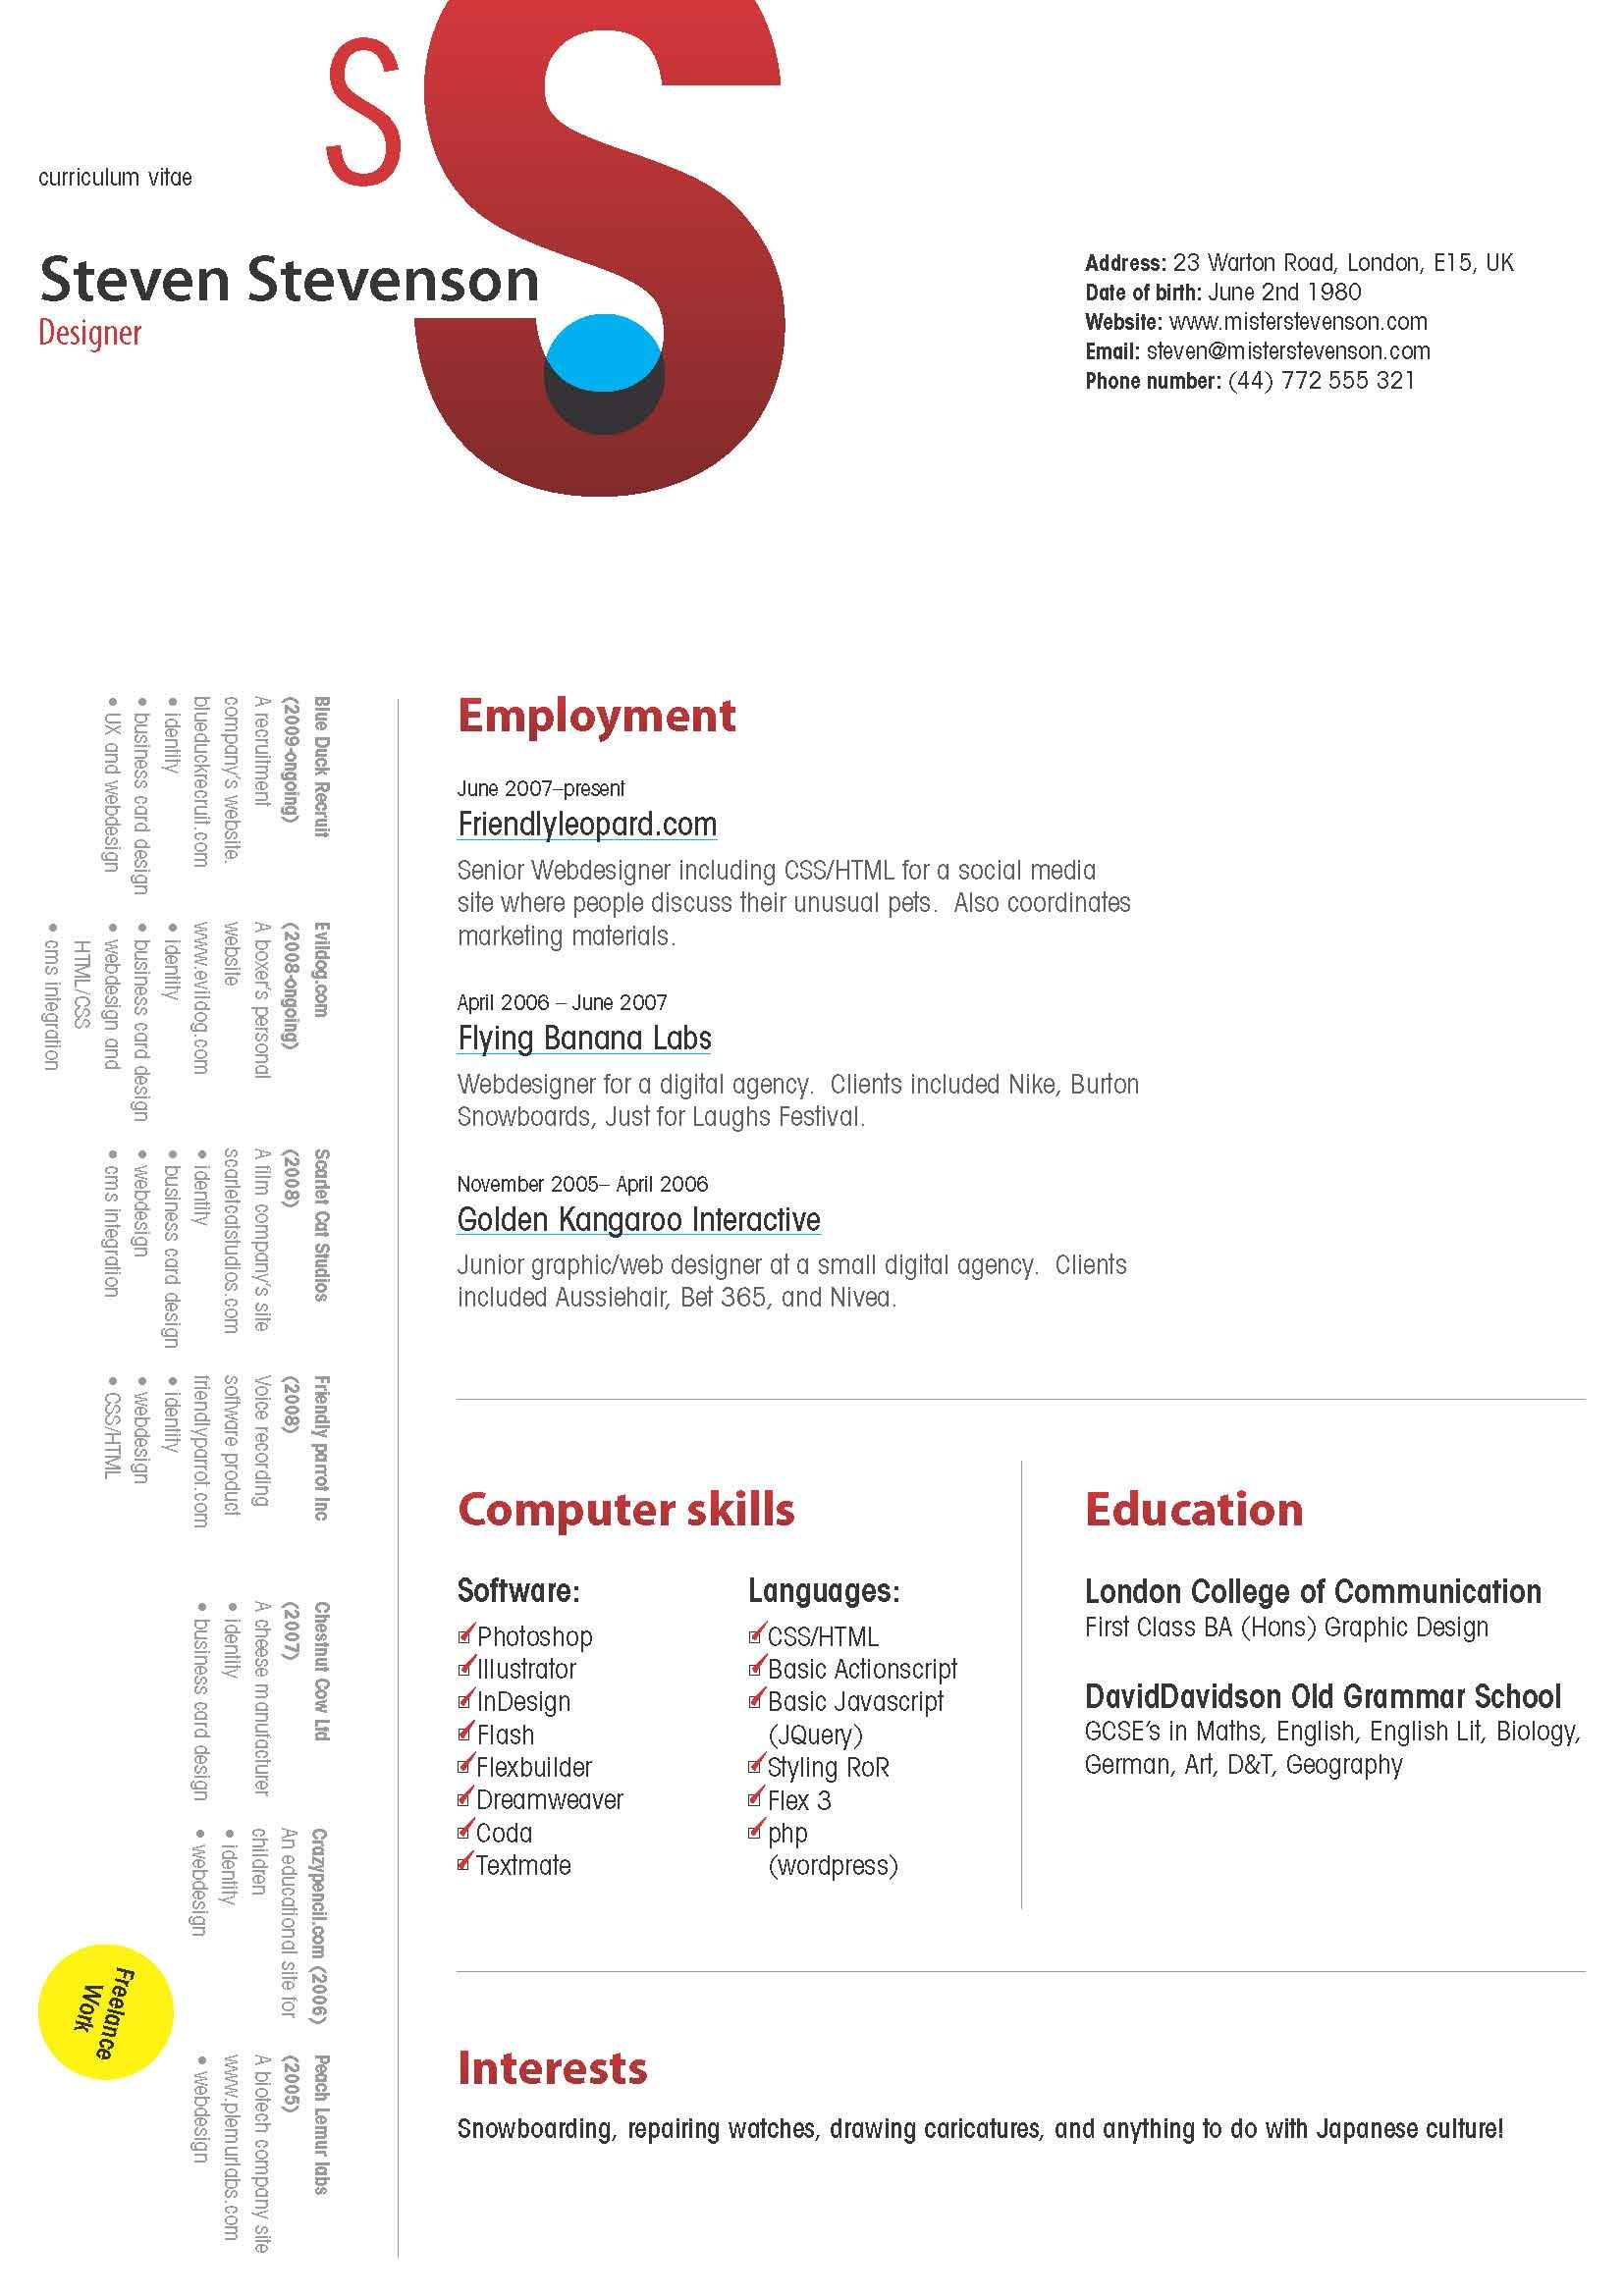 inspirational creative resume cv  designs   jobs interviews      inspirational creative resume cv  designs   jobs interviews   pinterest   cv design  resume cv and resume